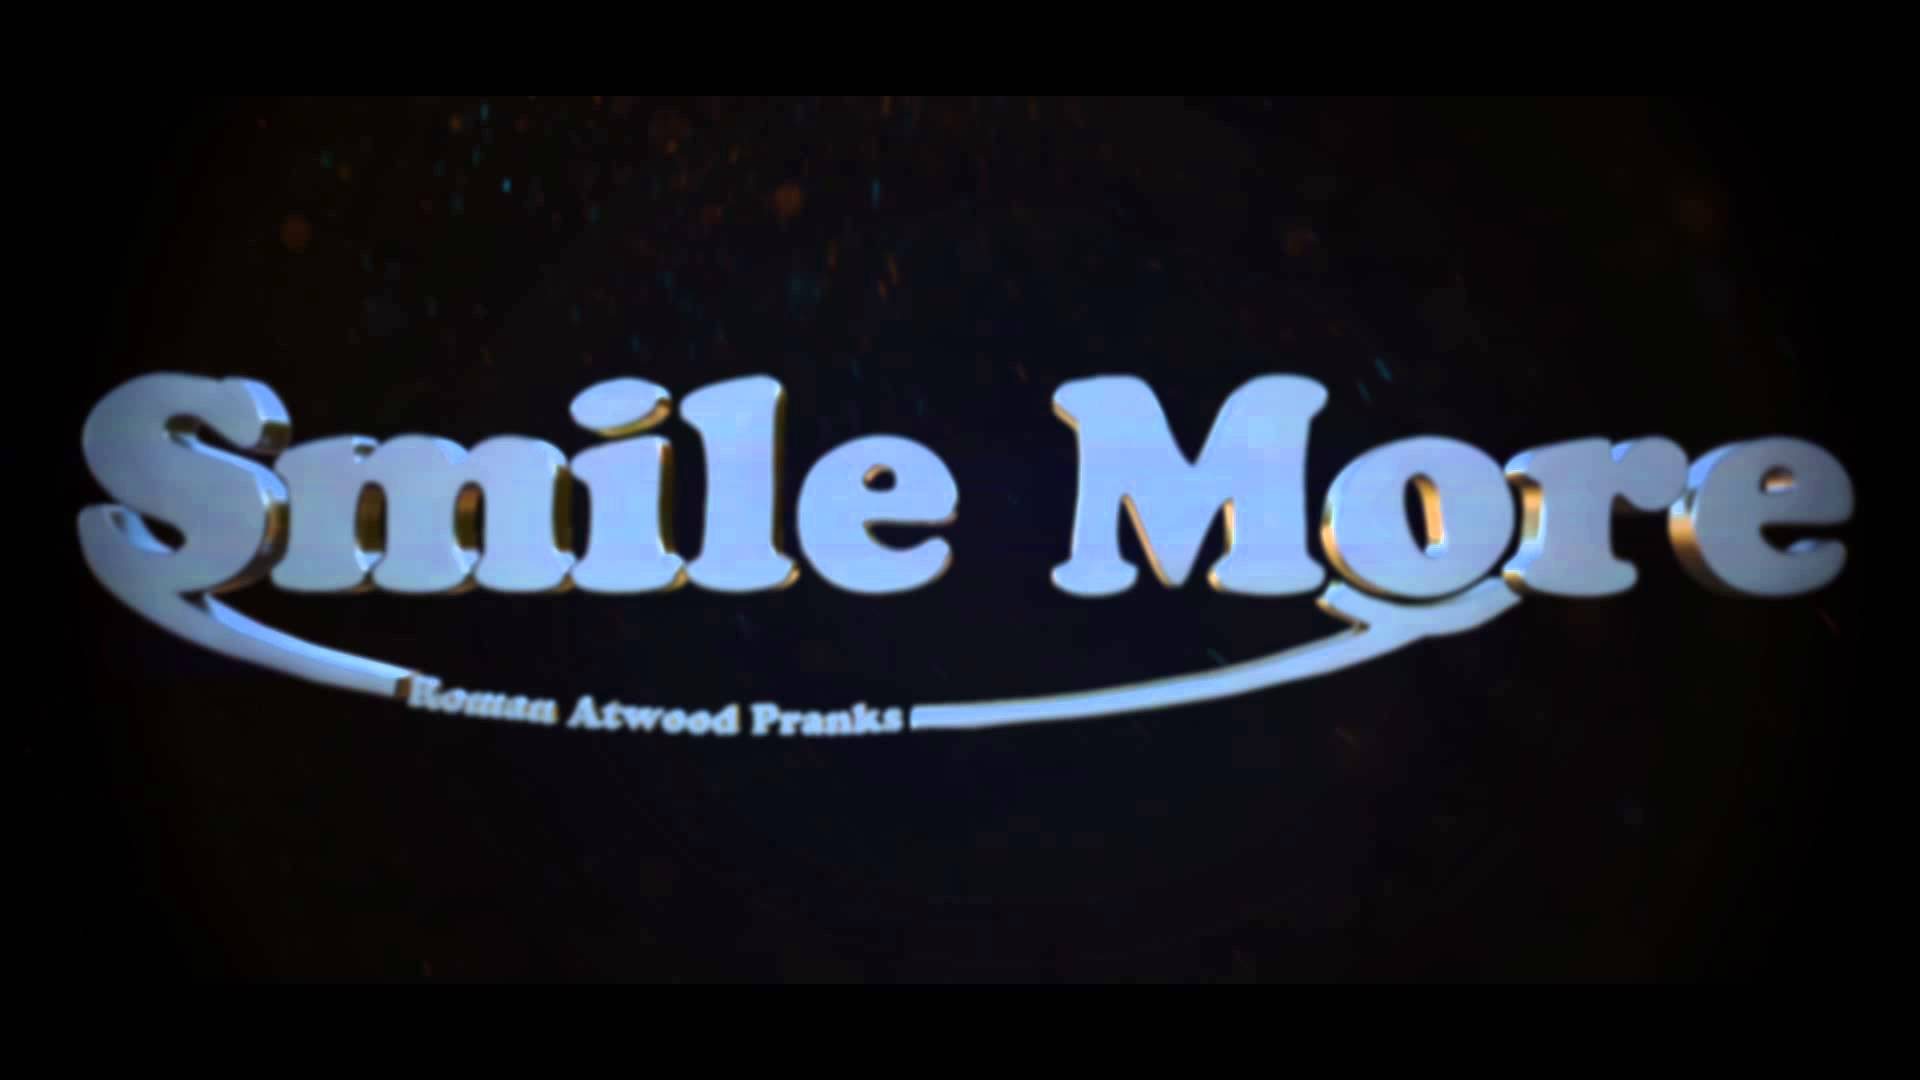 Smile More [Roman Atwood] Intro by ImpacTIIDesigN 1920x1080